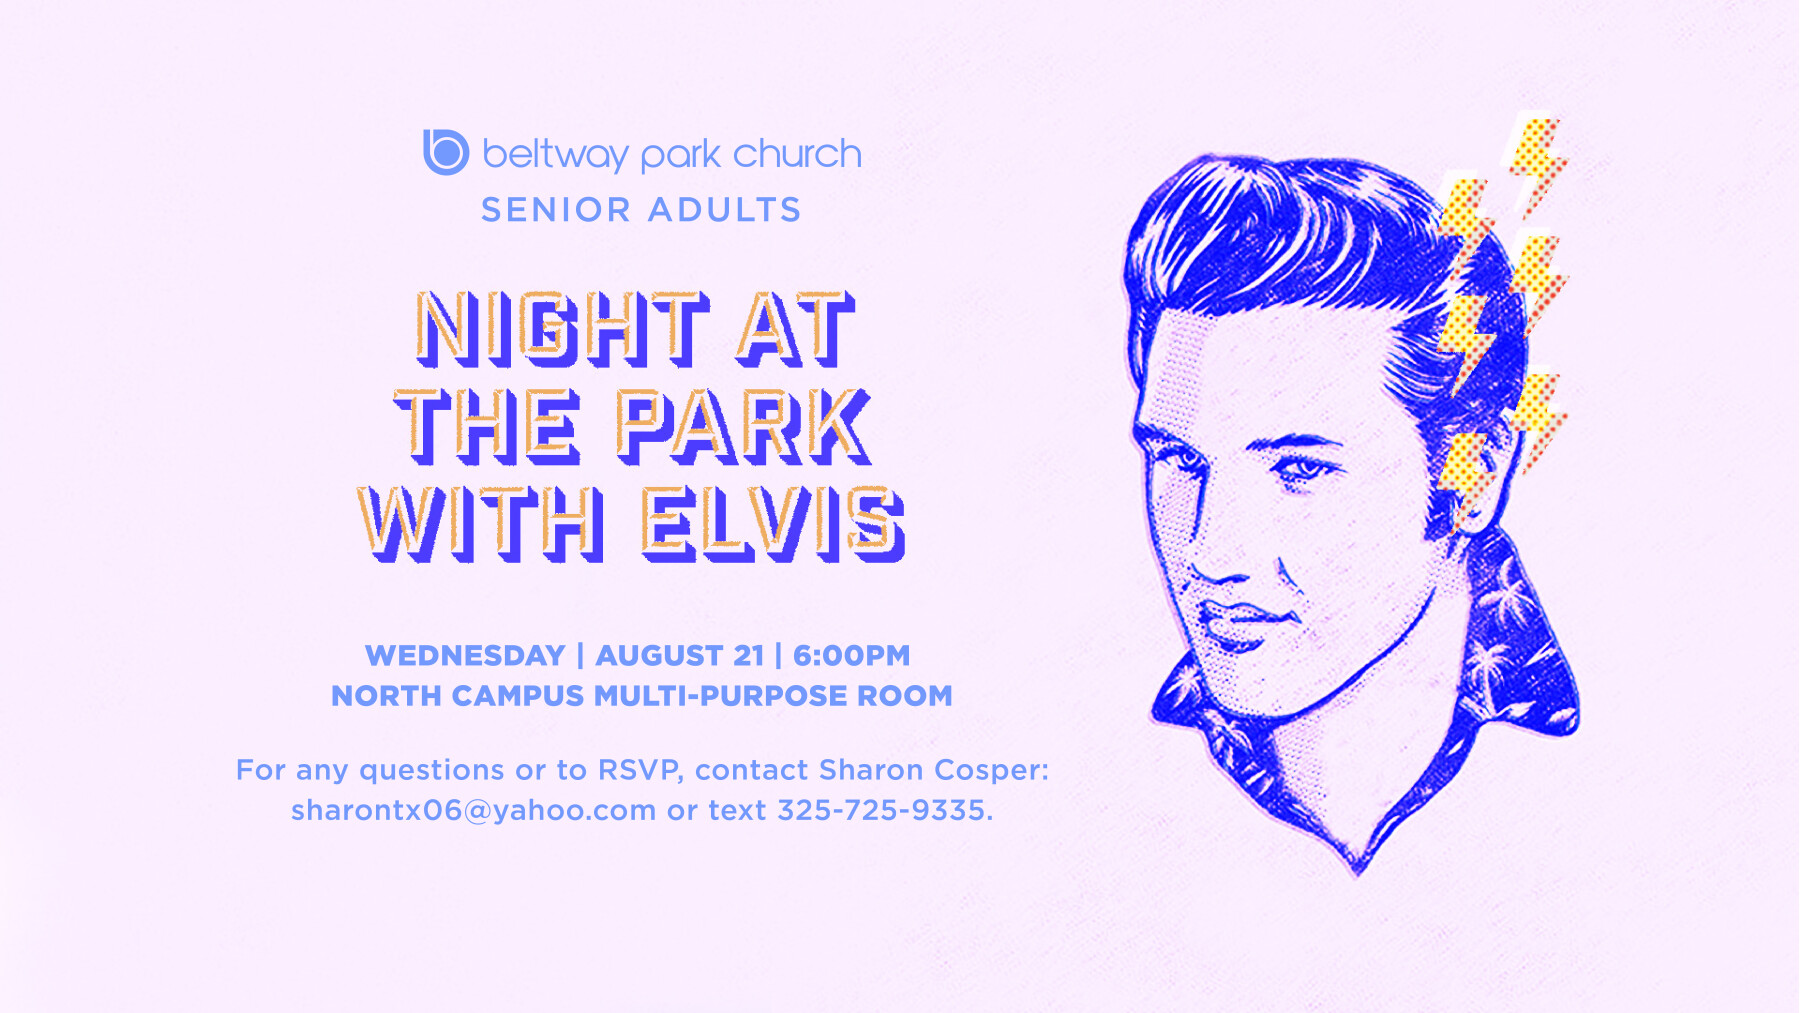 Senior Adults Night at the Park with Elvis